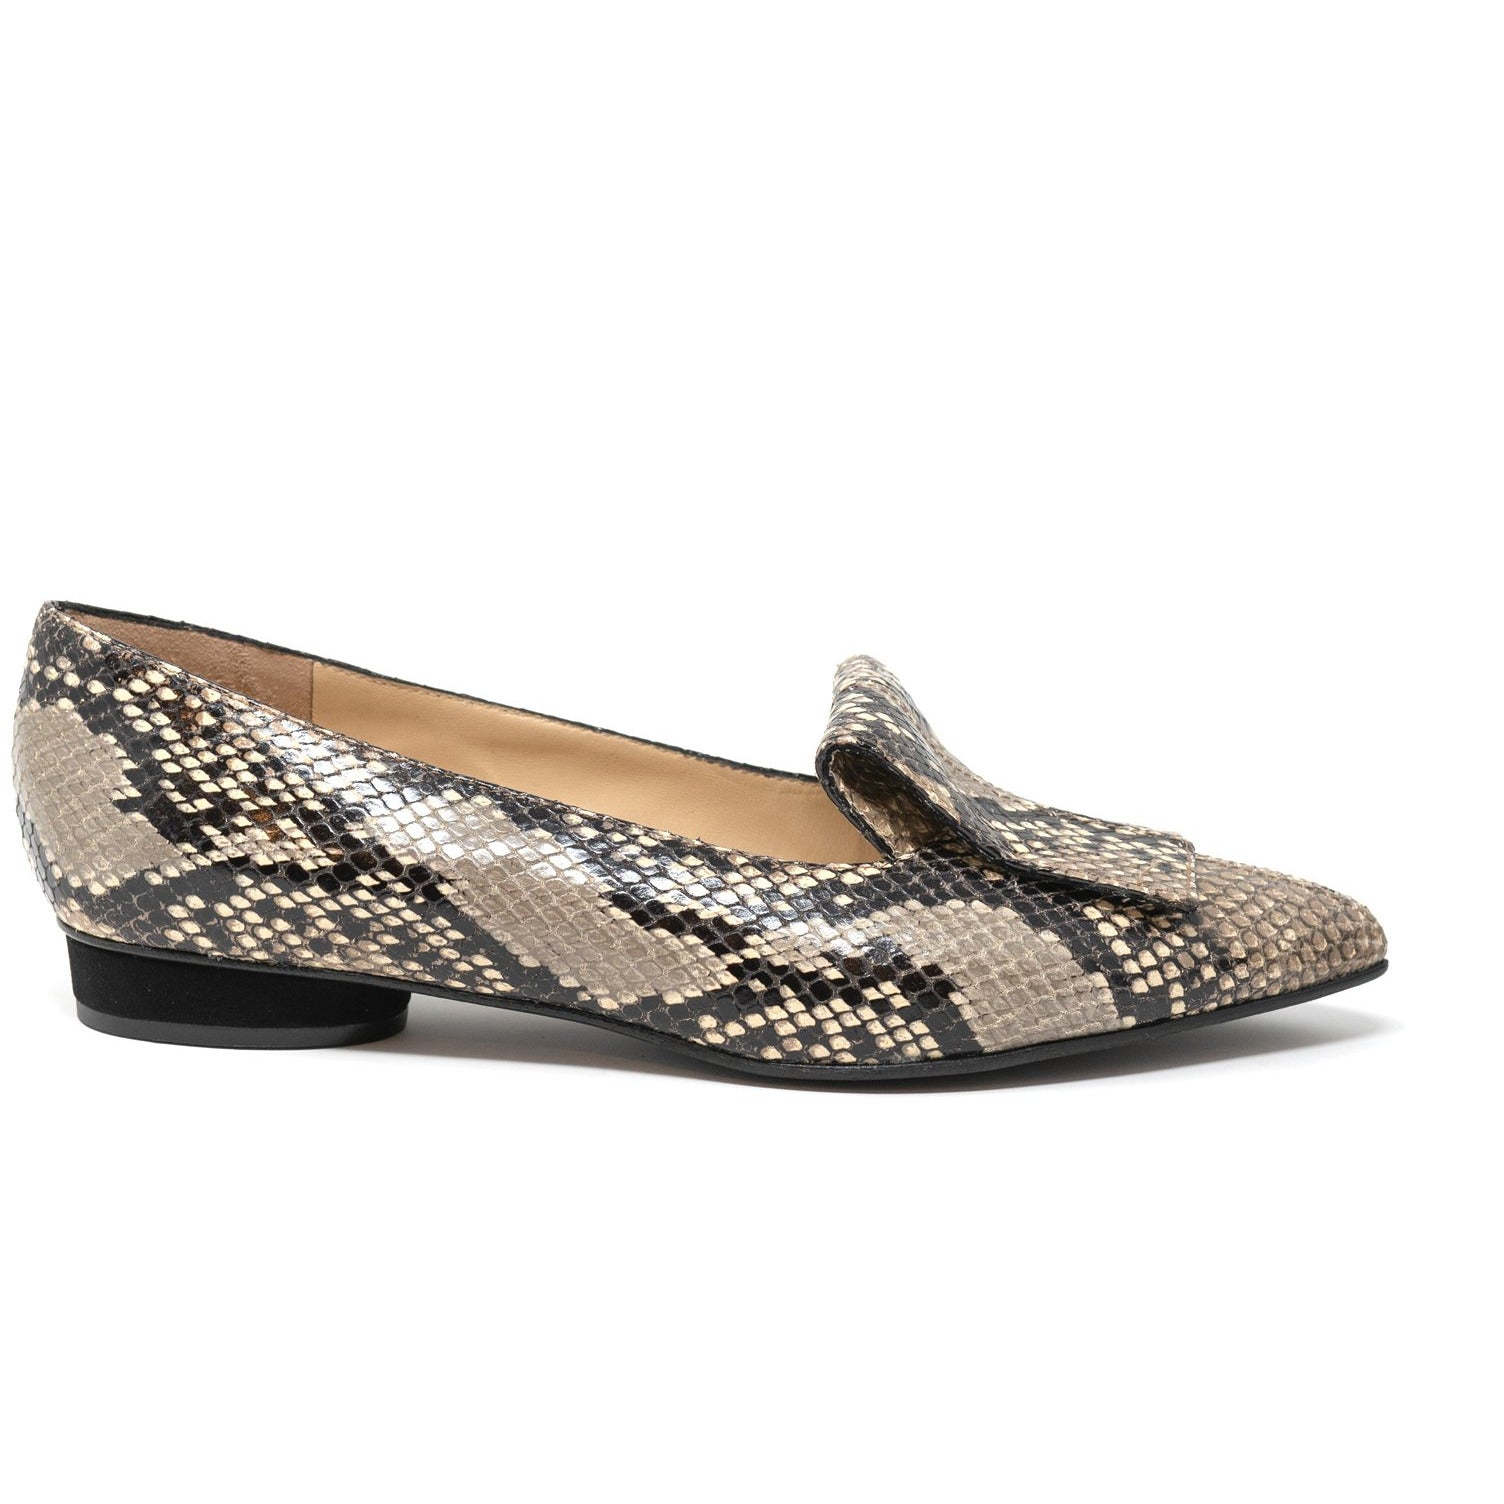 MIL8201 T10 Women Leather Flats - Jennifer Tattanelli